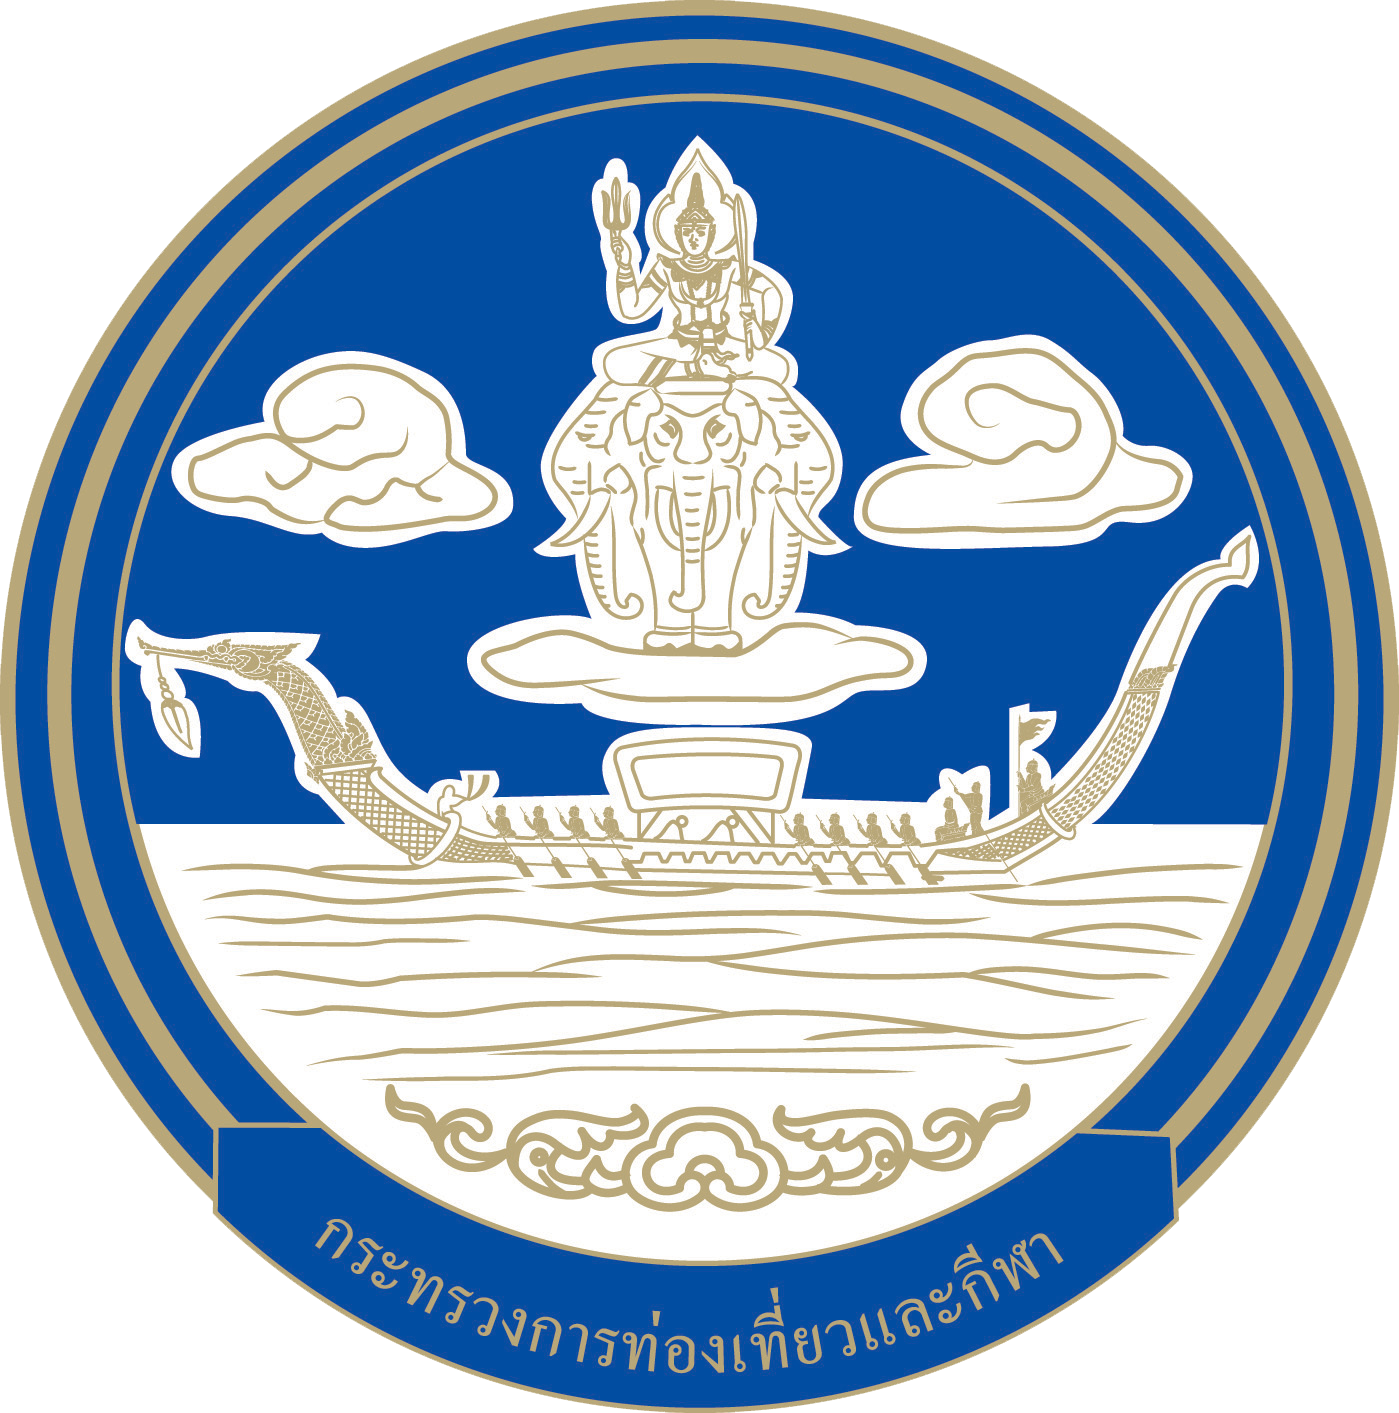 MOTST Supporting Authority for The Thailand International Boat Show